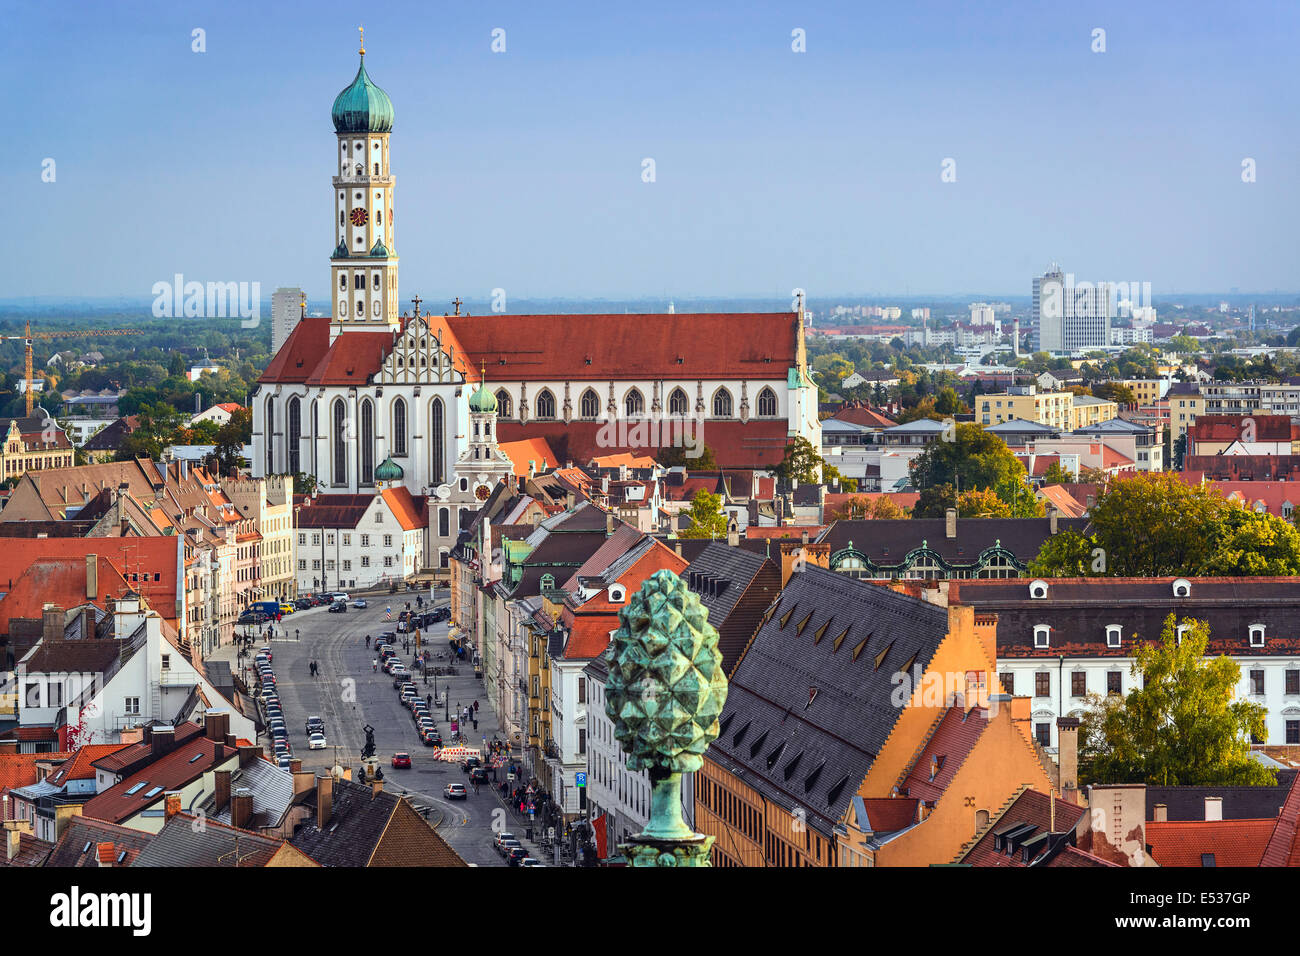 Augsburg Shopping Augsburg Germany Downtown Skyline Stock Photo 71986566